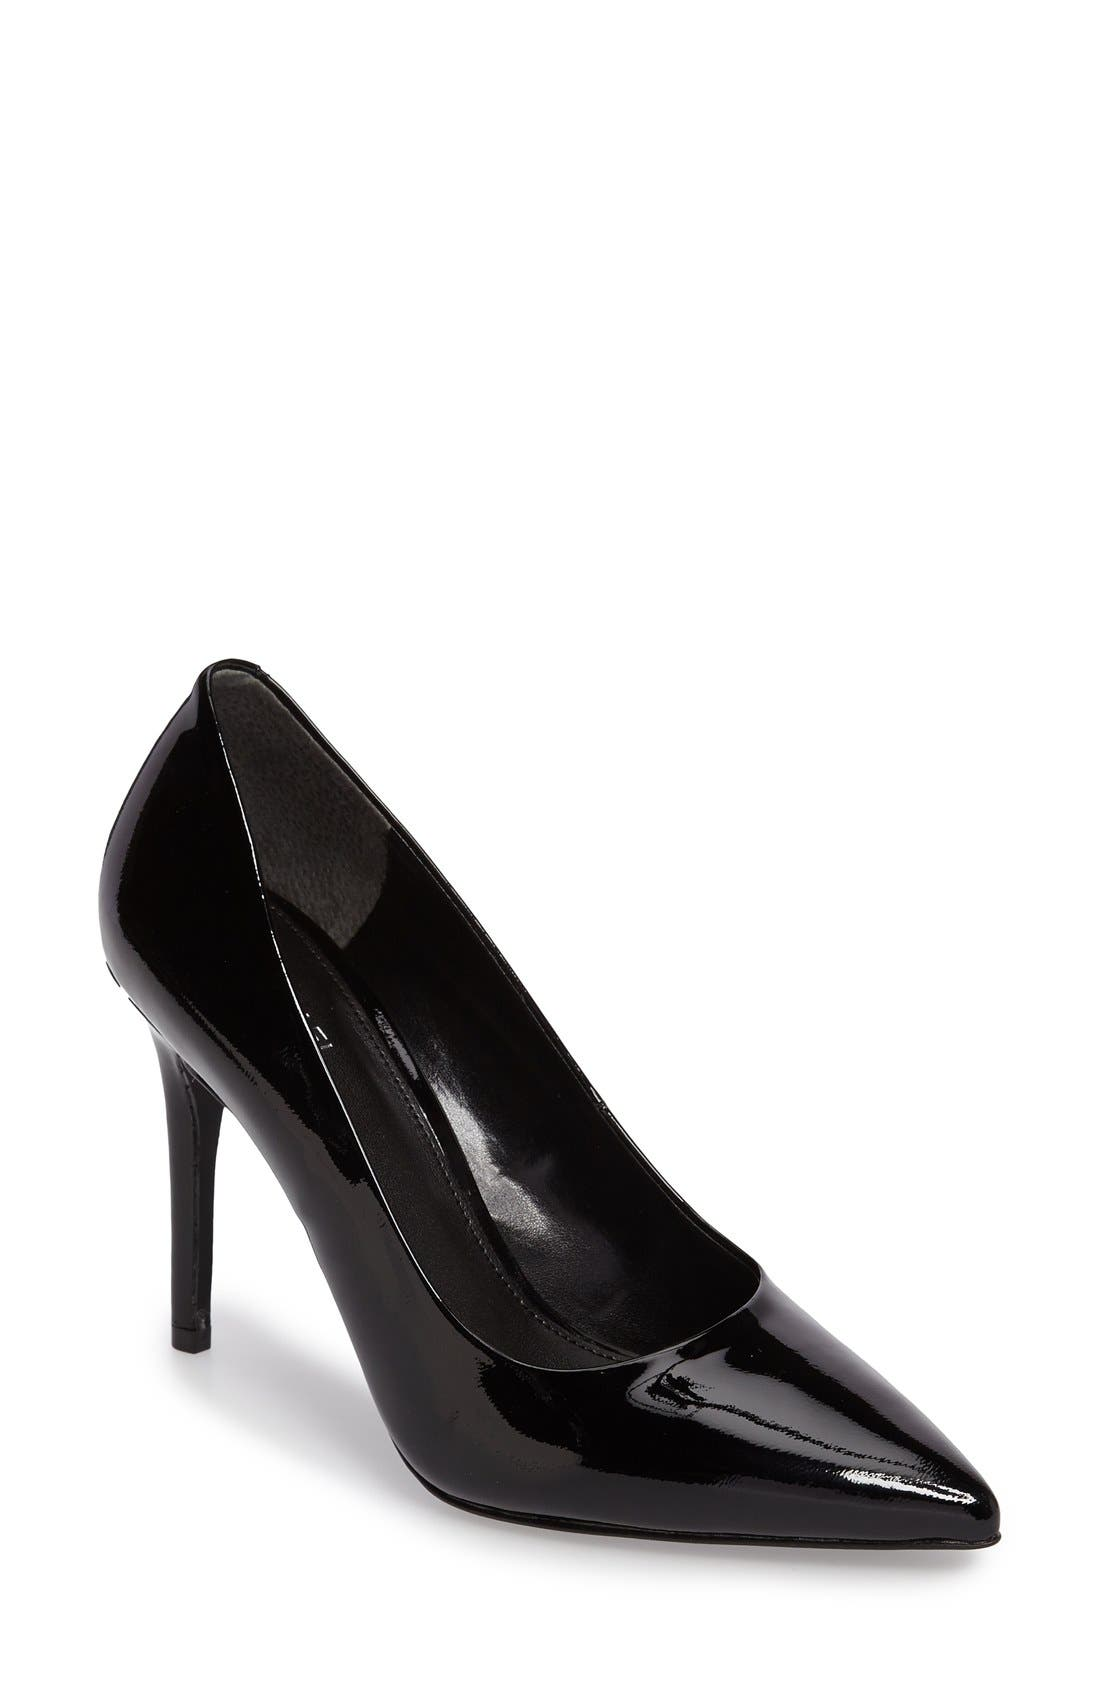 Alternate Image 1 Selected - MICHAEL Michael Kors Claire Pointy Toe Pump (Women)